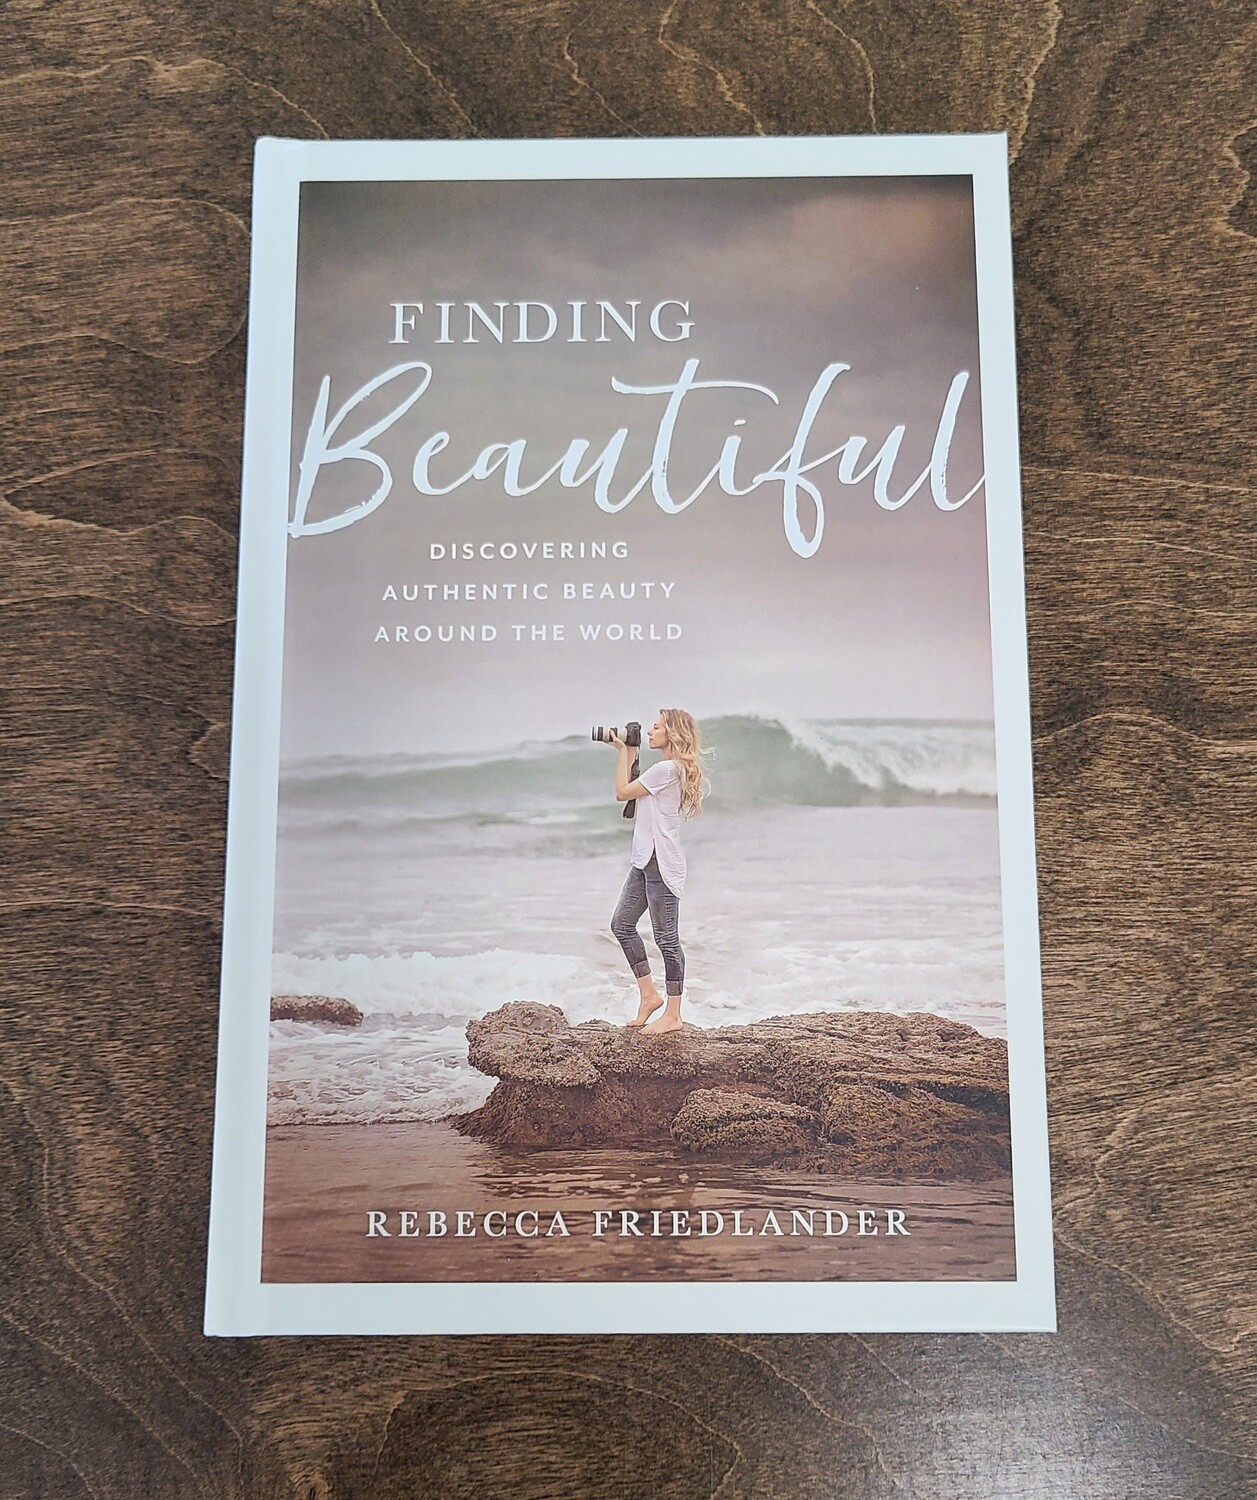 Finding Beautiful by Rebecca Friedlander